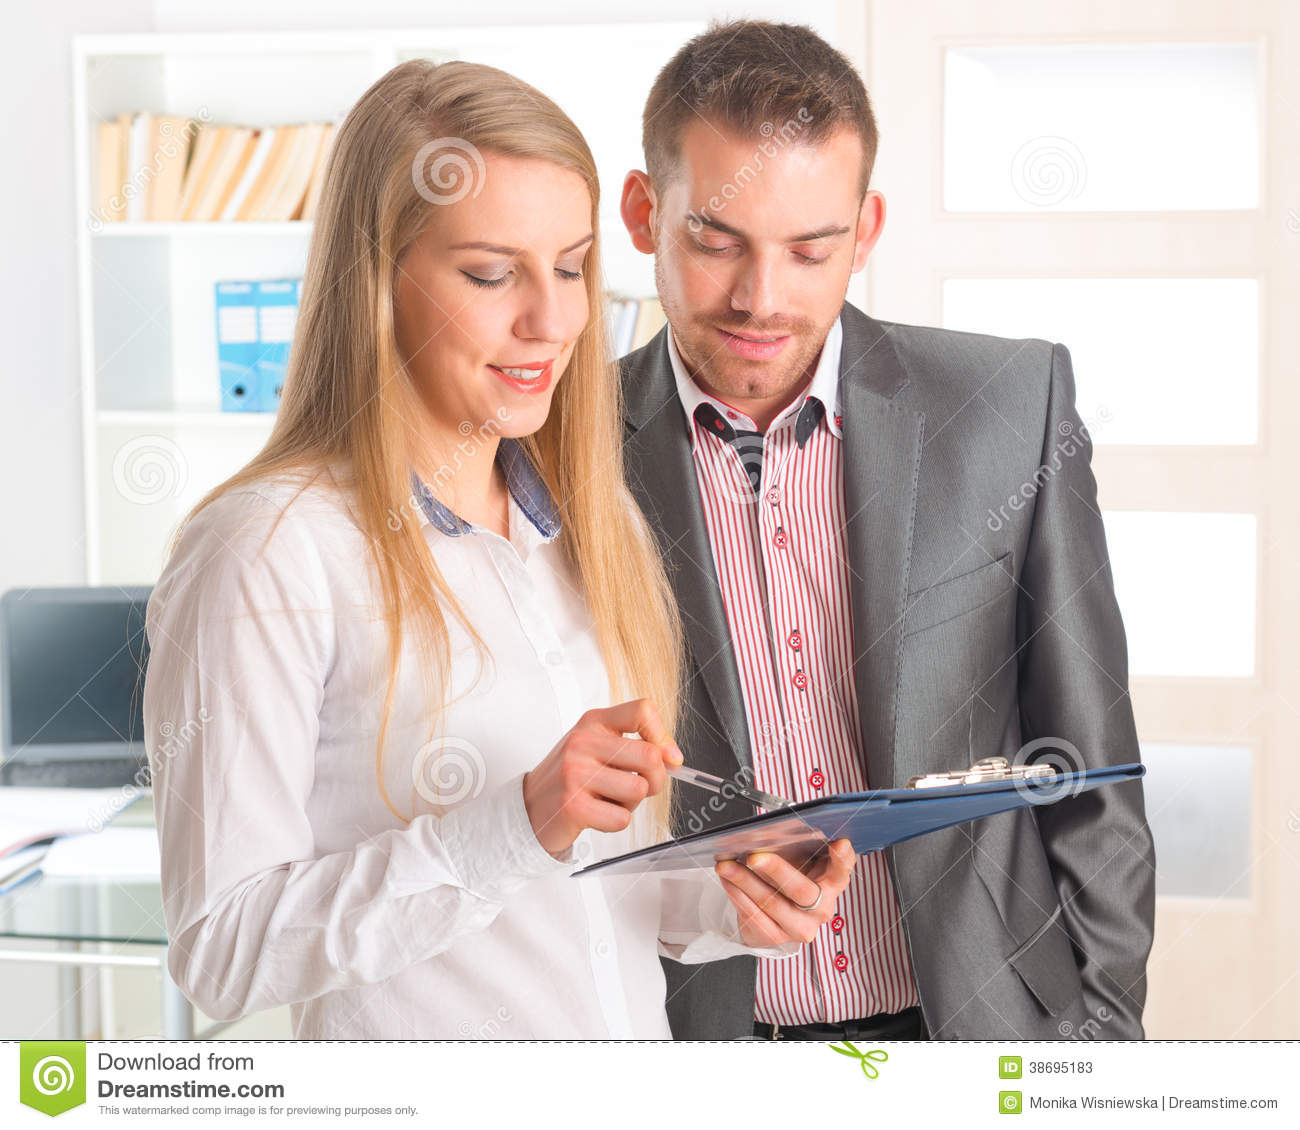 Business people reading a document together